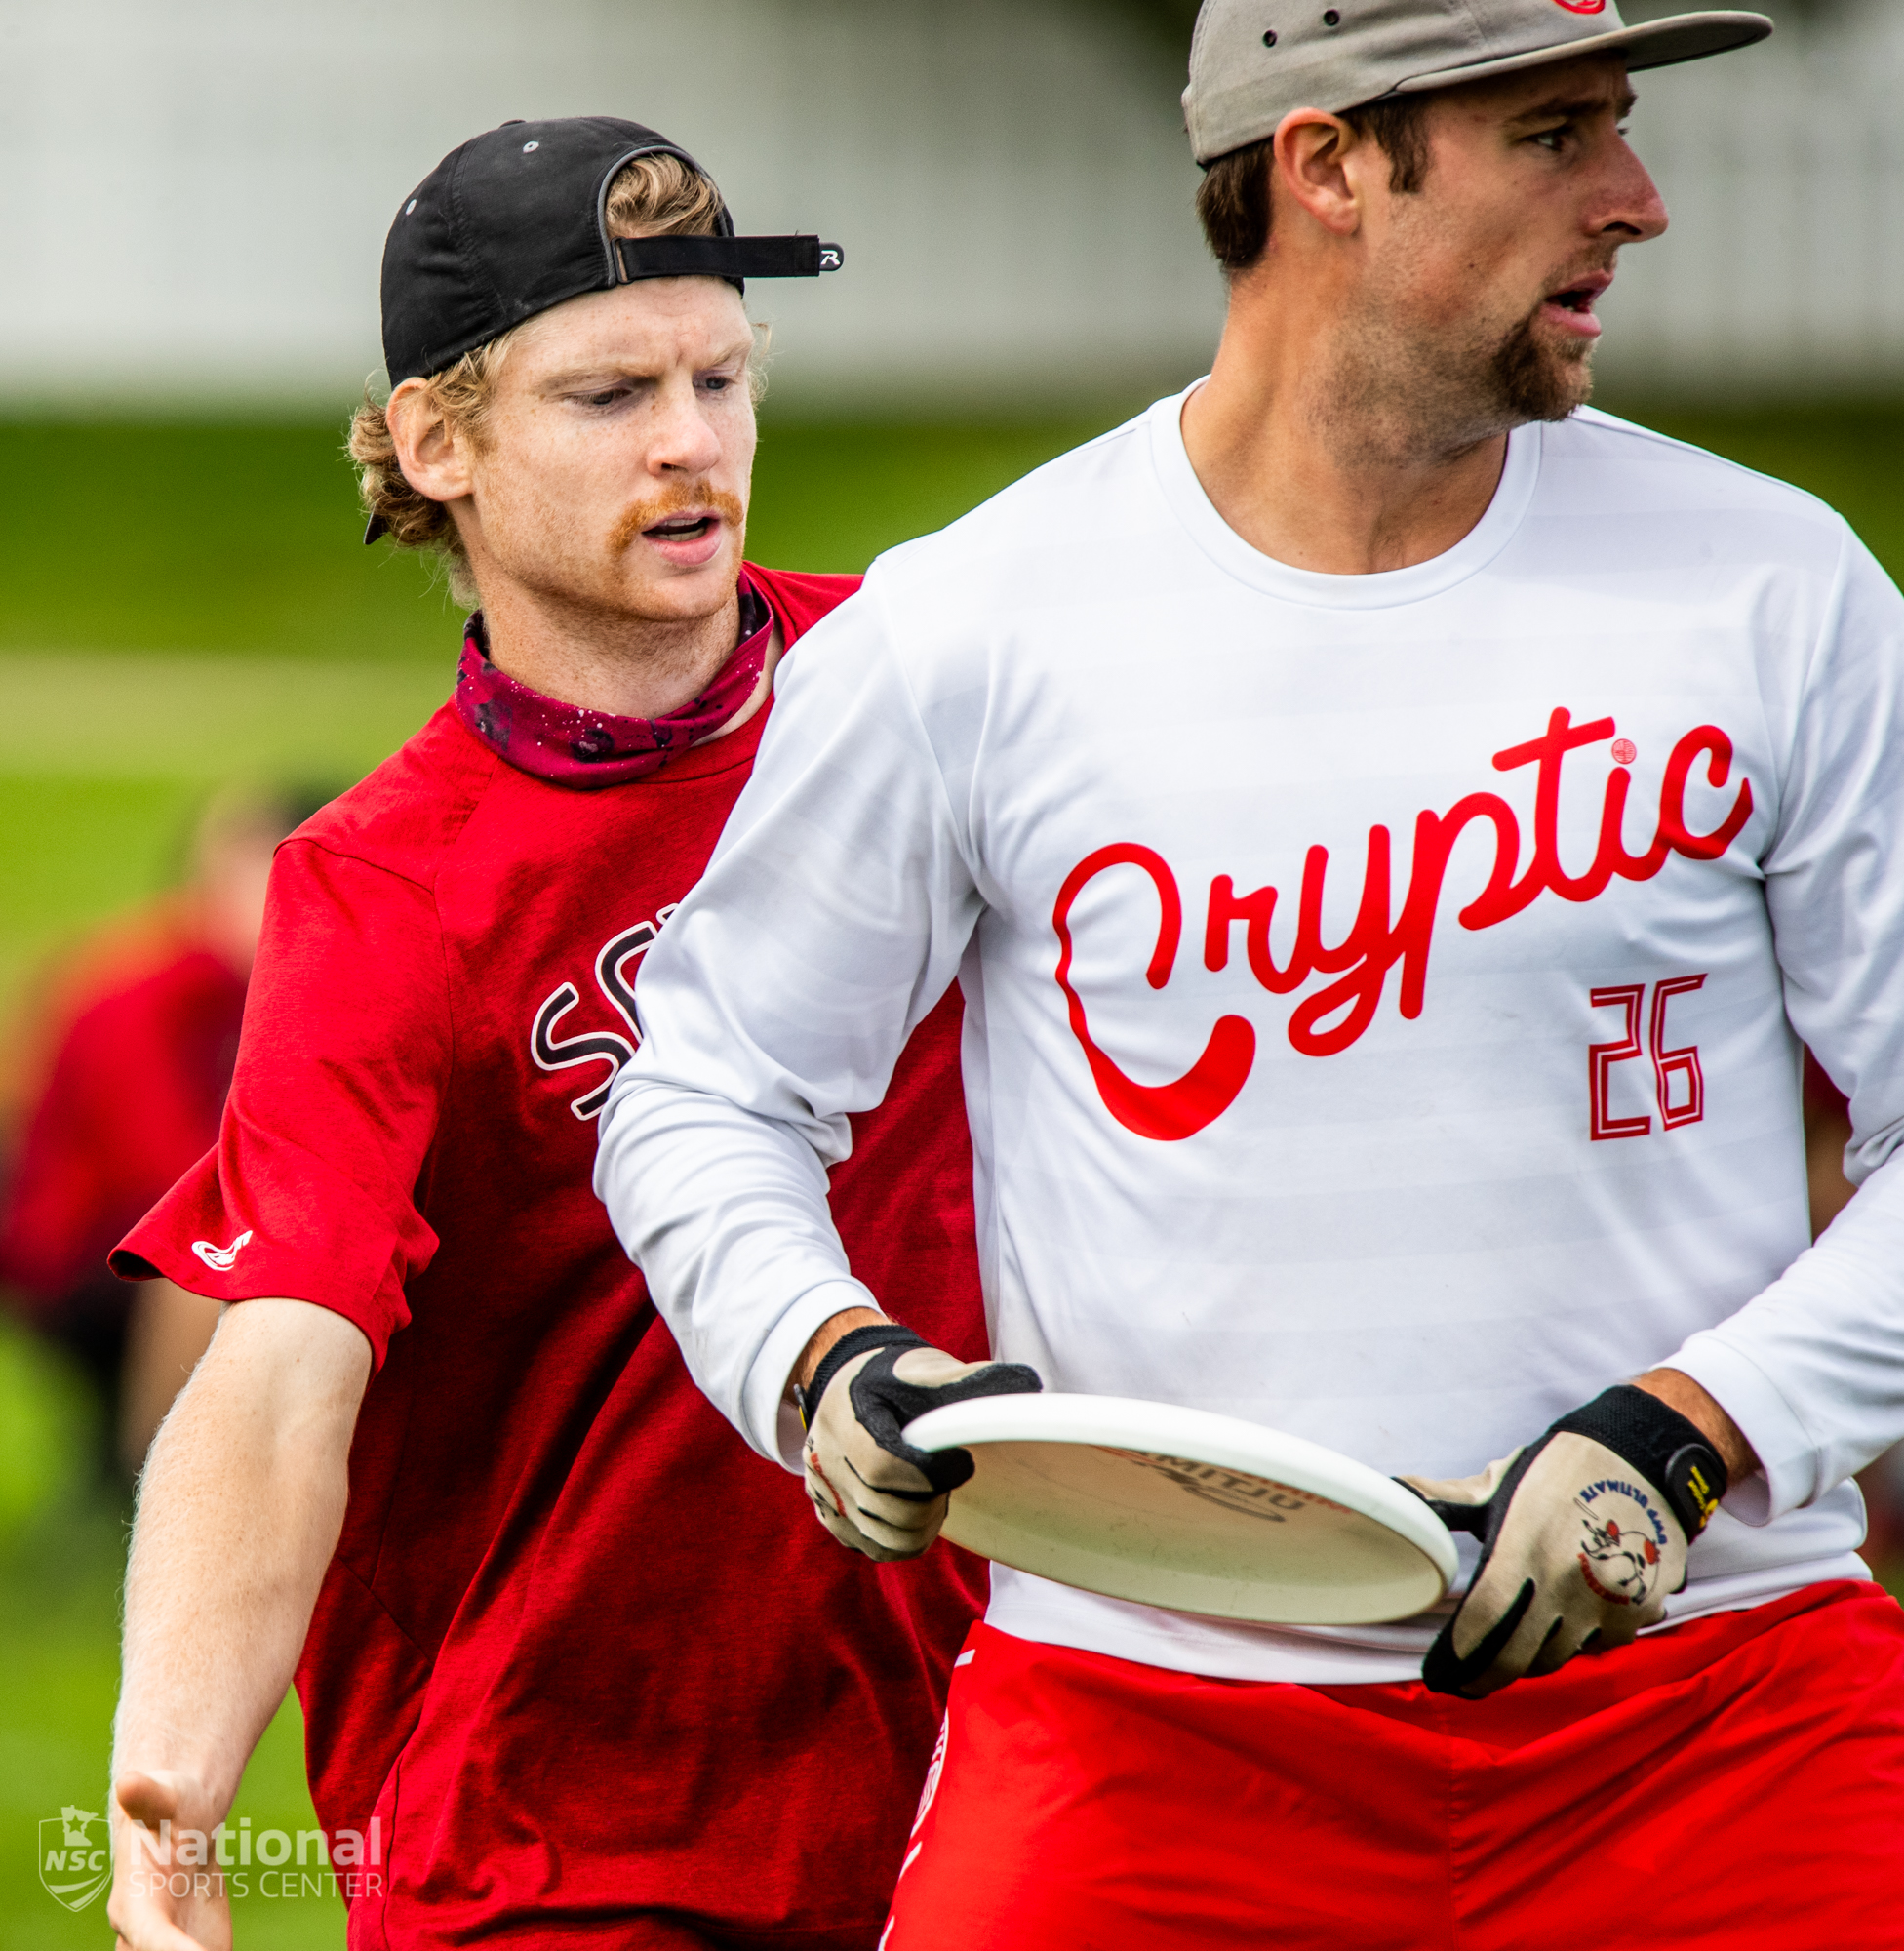 USA Ultimate Regionals at NSC 9.22.19-1-8